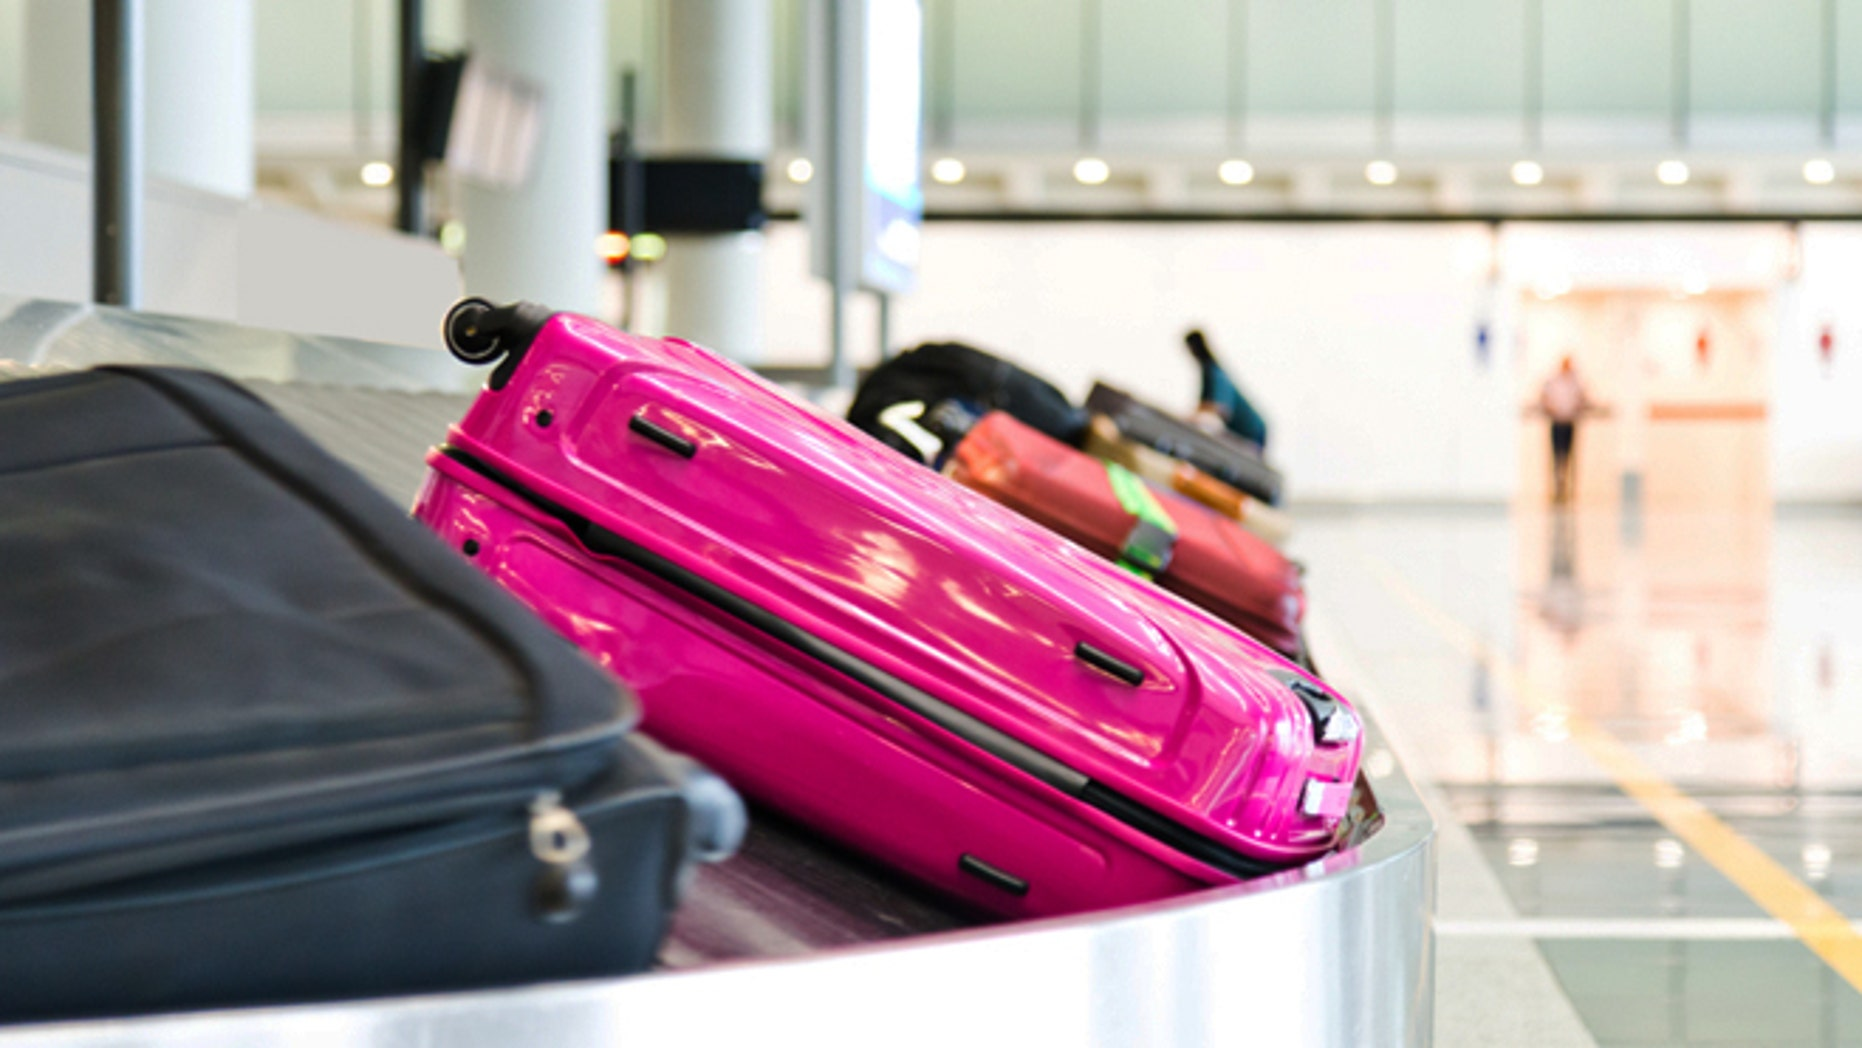 Big changes are on the way for airborne luggage.